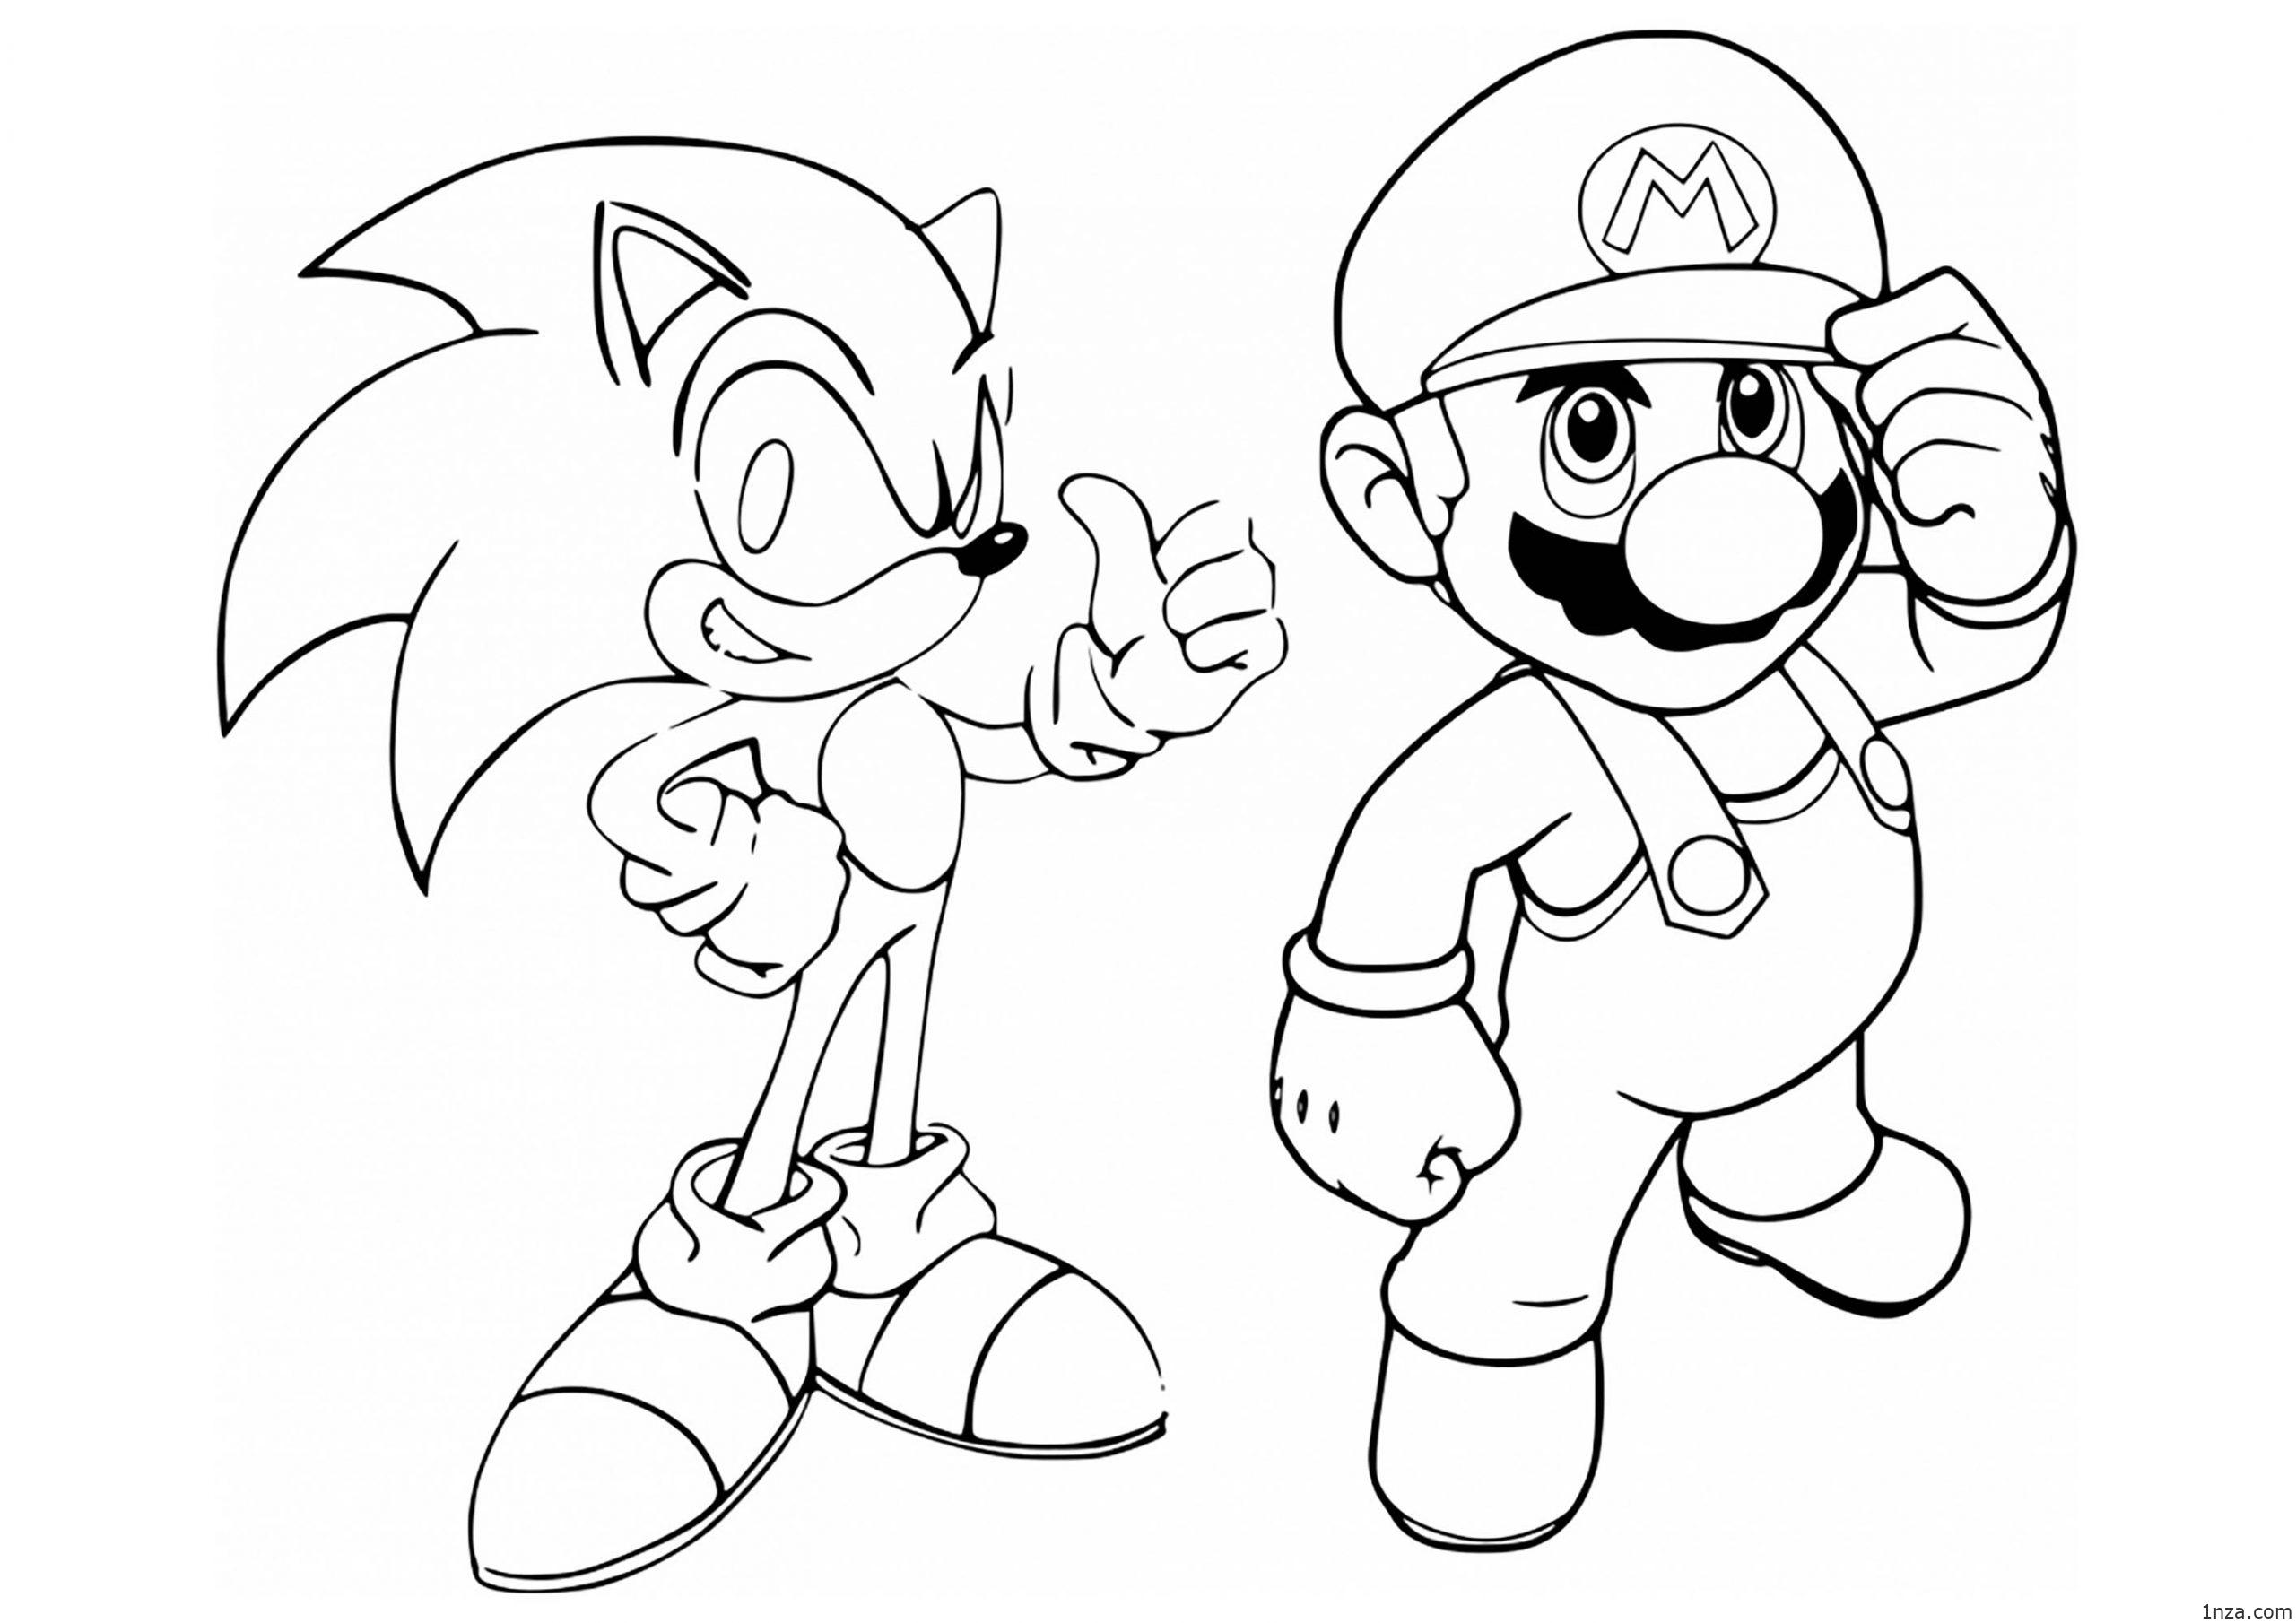 sonic the hedgehog printable coloring pages sonic coloring pages team colors hedgehog printable sonic coloring the pages